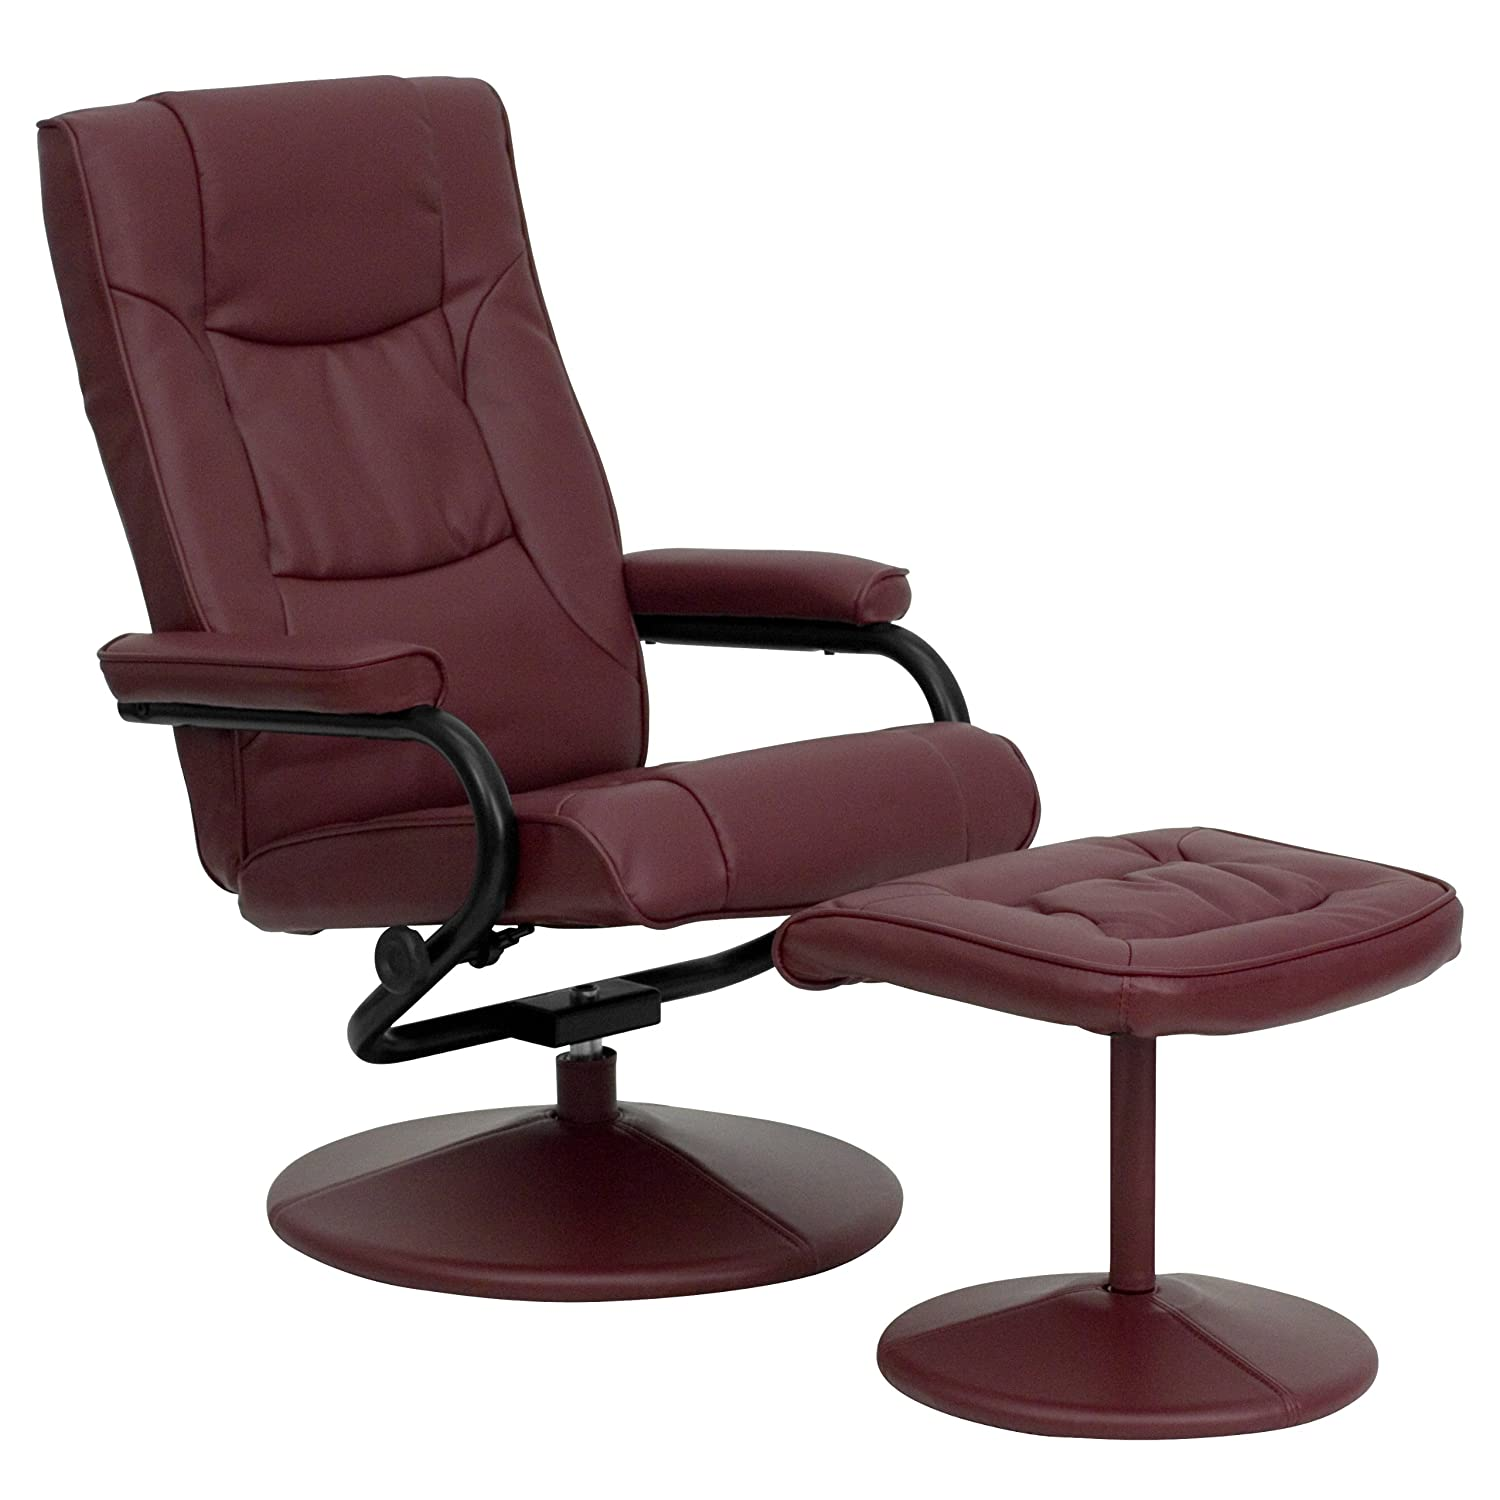 Amazon MFO Contemporary Burgundy Leather Recliner and Ottoman